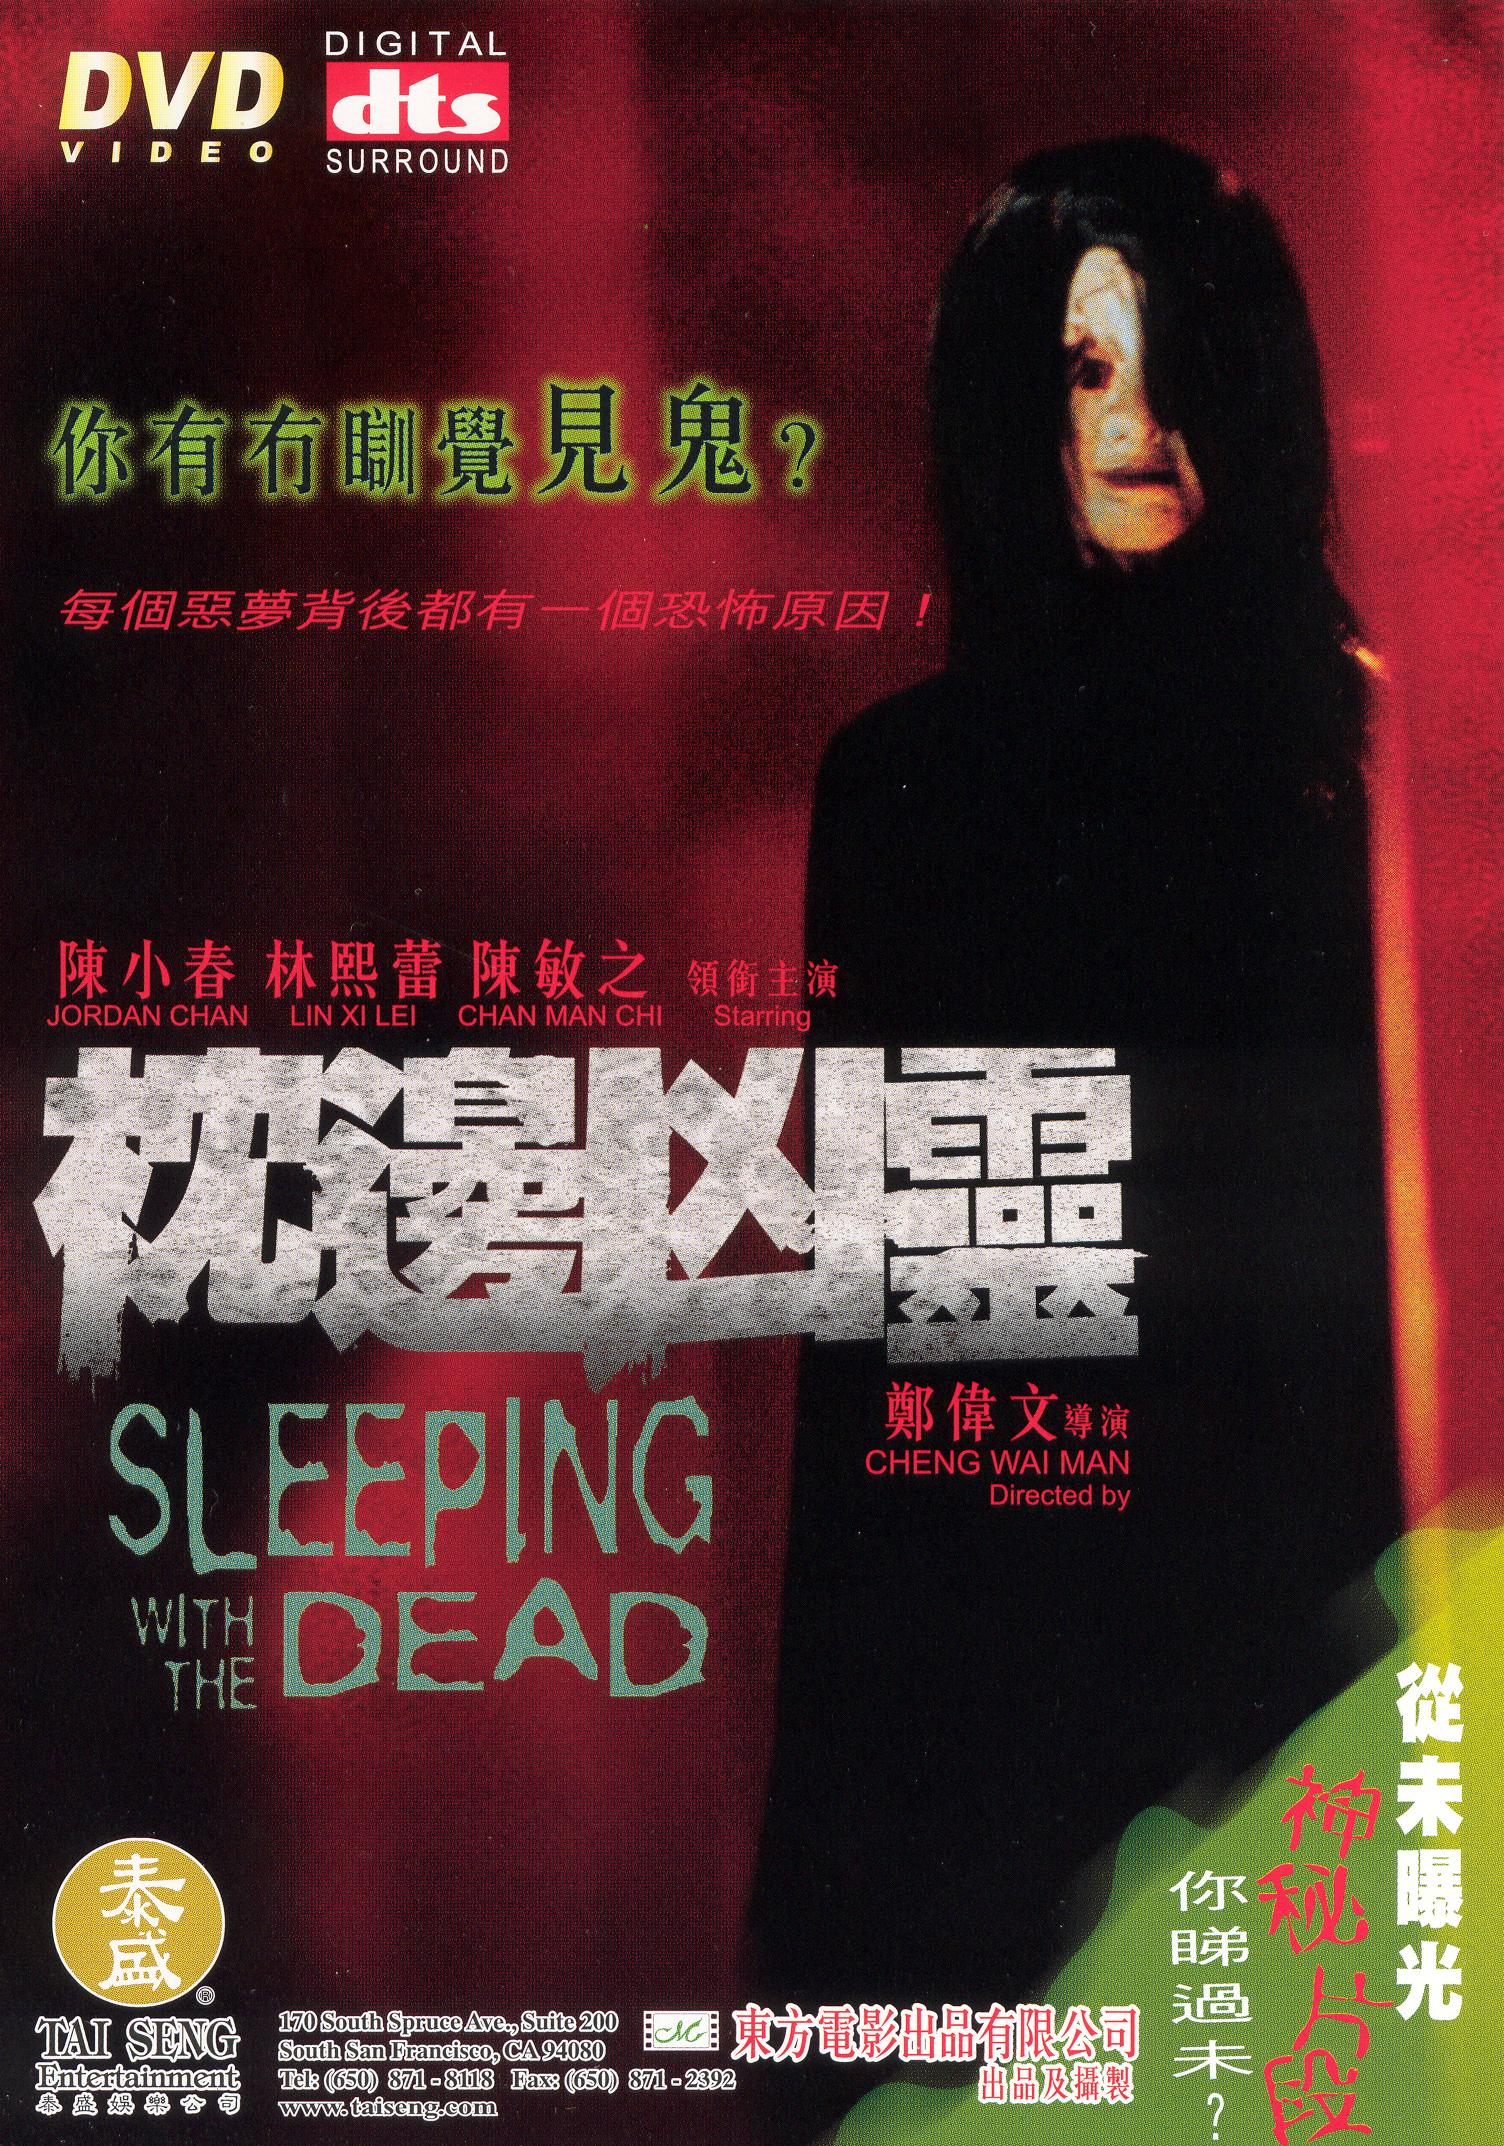 Sleeping with the Dead